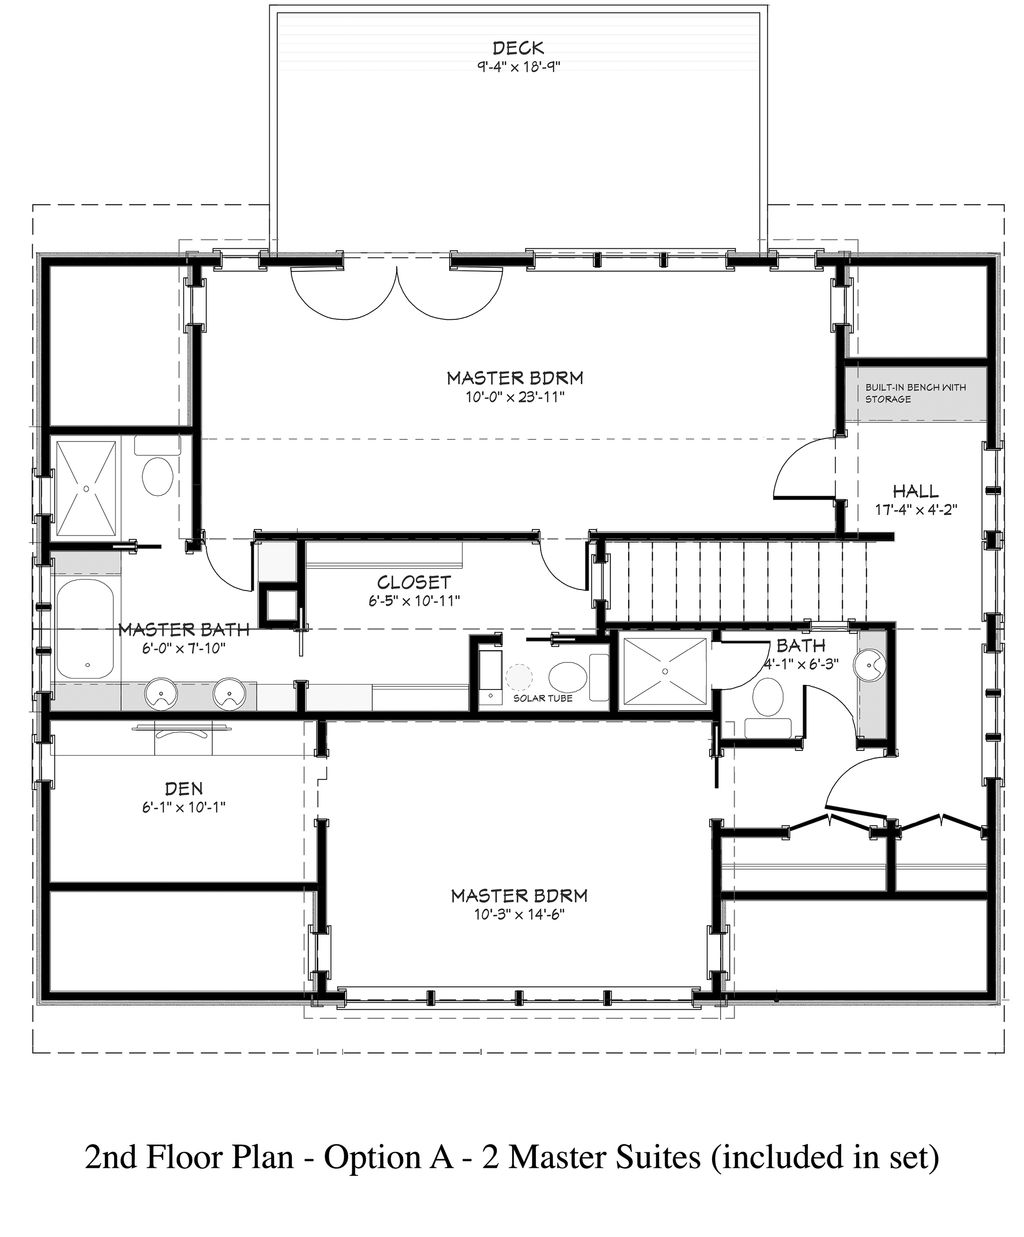 Country Style House Plan - 3 Beds 3 Baths 2100 Sq/Ft Plan #917-12 on tailor of room floor plans, 2100 sf house plans, bathrooms house plans, 2119 sq ft. house plans, 2 bath house plans, 3 beds house plans, 2100 sq ft home, garlinger house plans, large kitchen house plans, finished basement house plans,